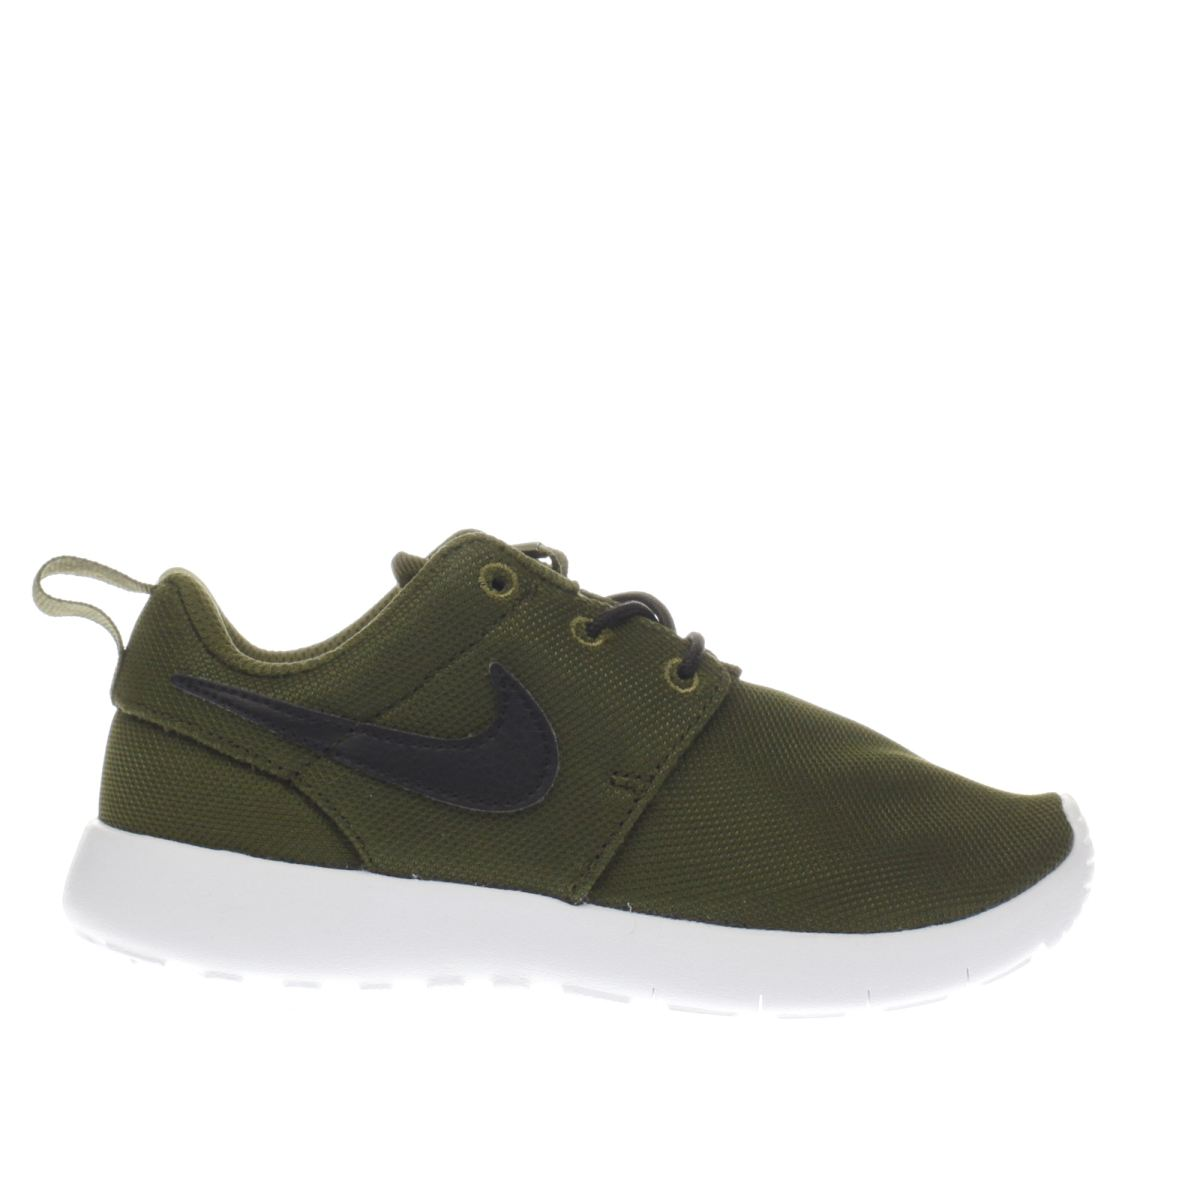 Nike Junior Trainers Nike Roshe Run Kids Boys Trainers Sports Running Shoes | eBay